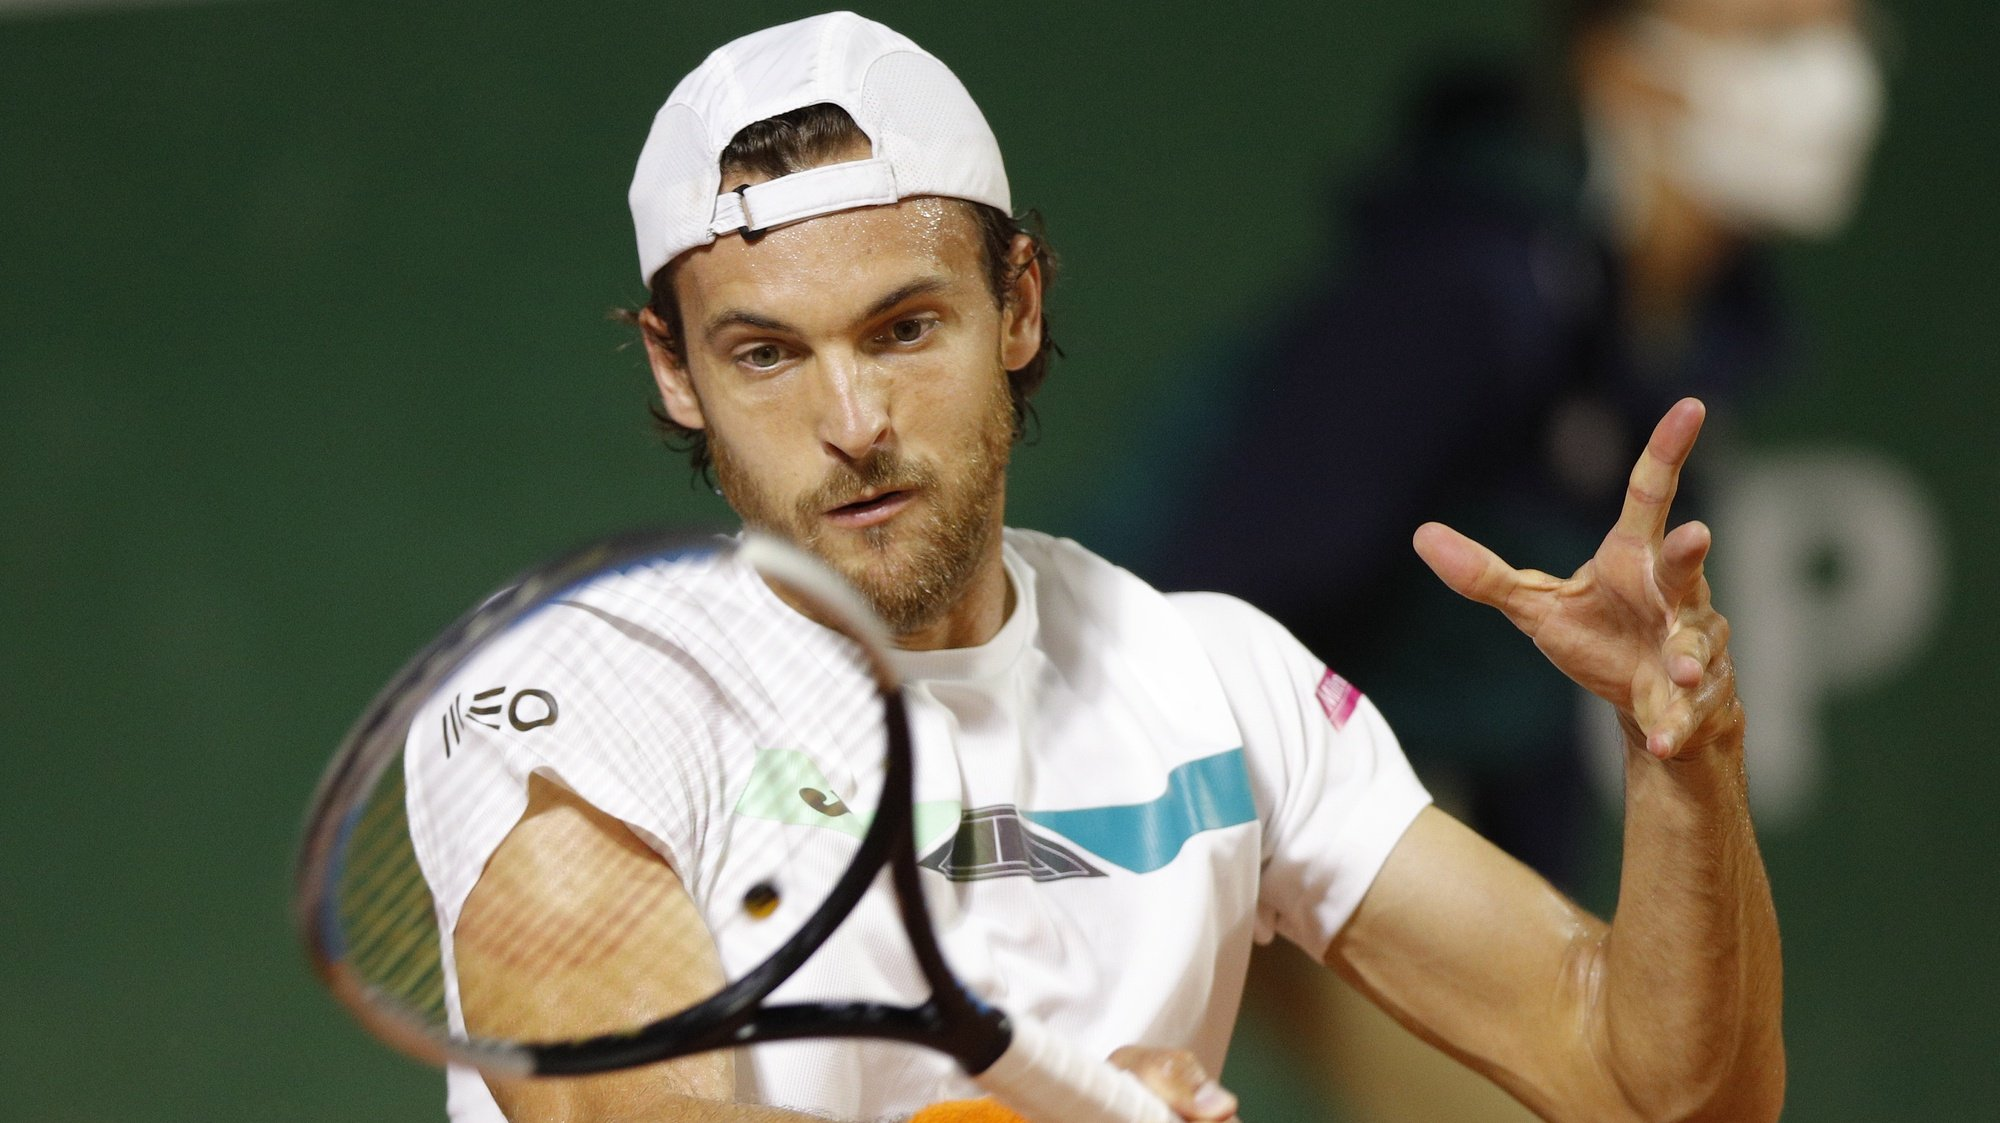 epa08706517 Joao Sousa of Portugal hits a forehand during his first round match against Andrej Martin of Slovakia at the French Open tennis tournament at Roland Garros in Paris, France, 29 September 2020.  EPA/YOAN VALAT